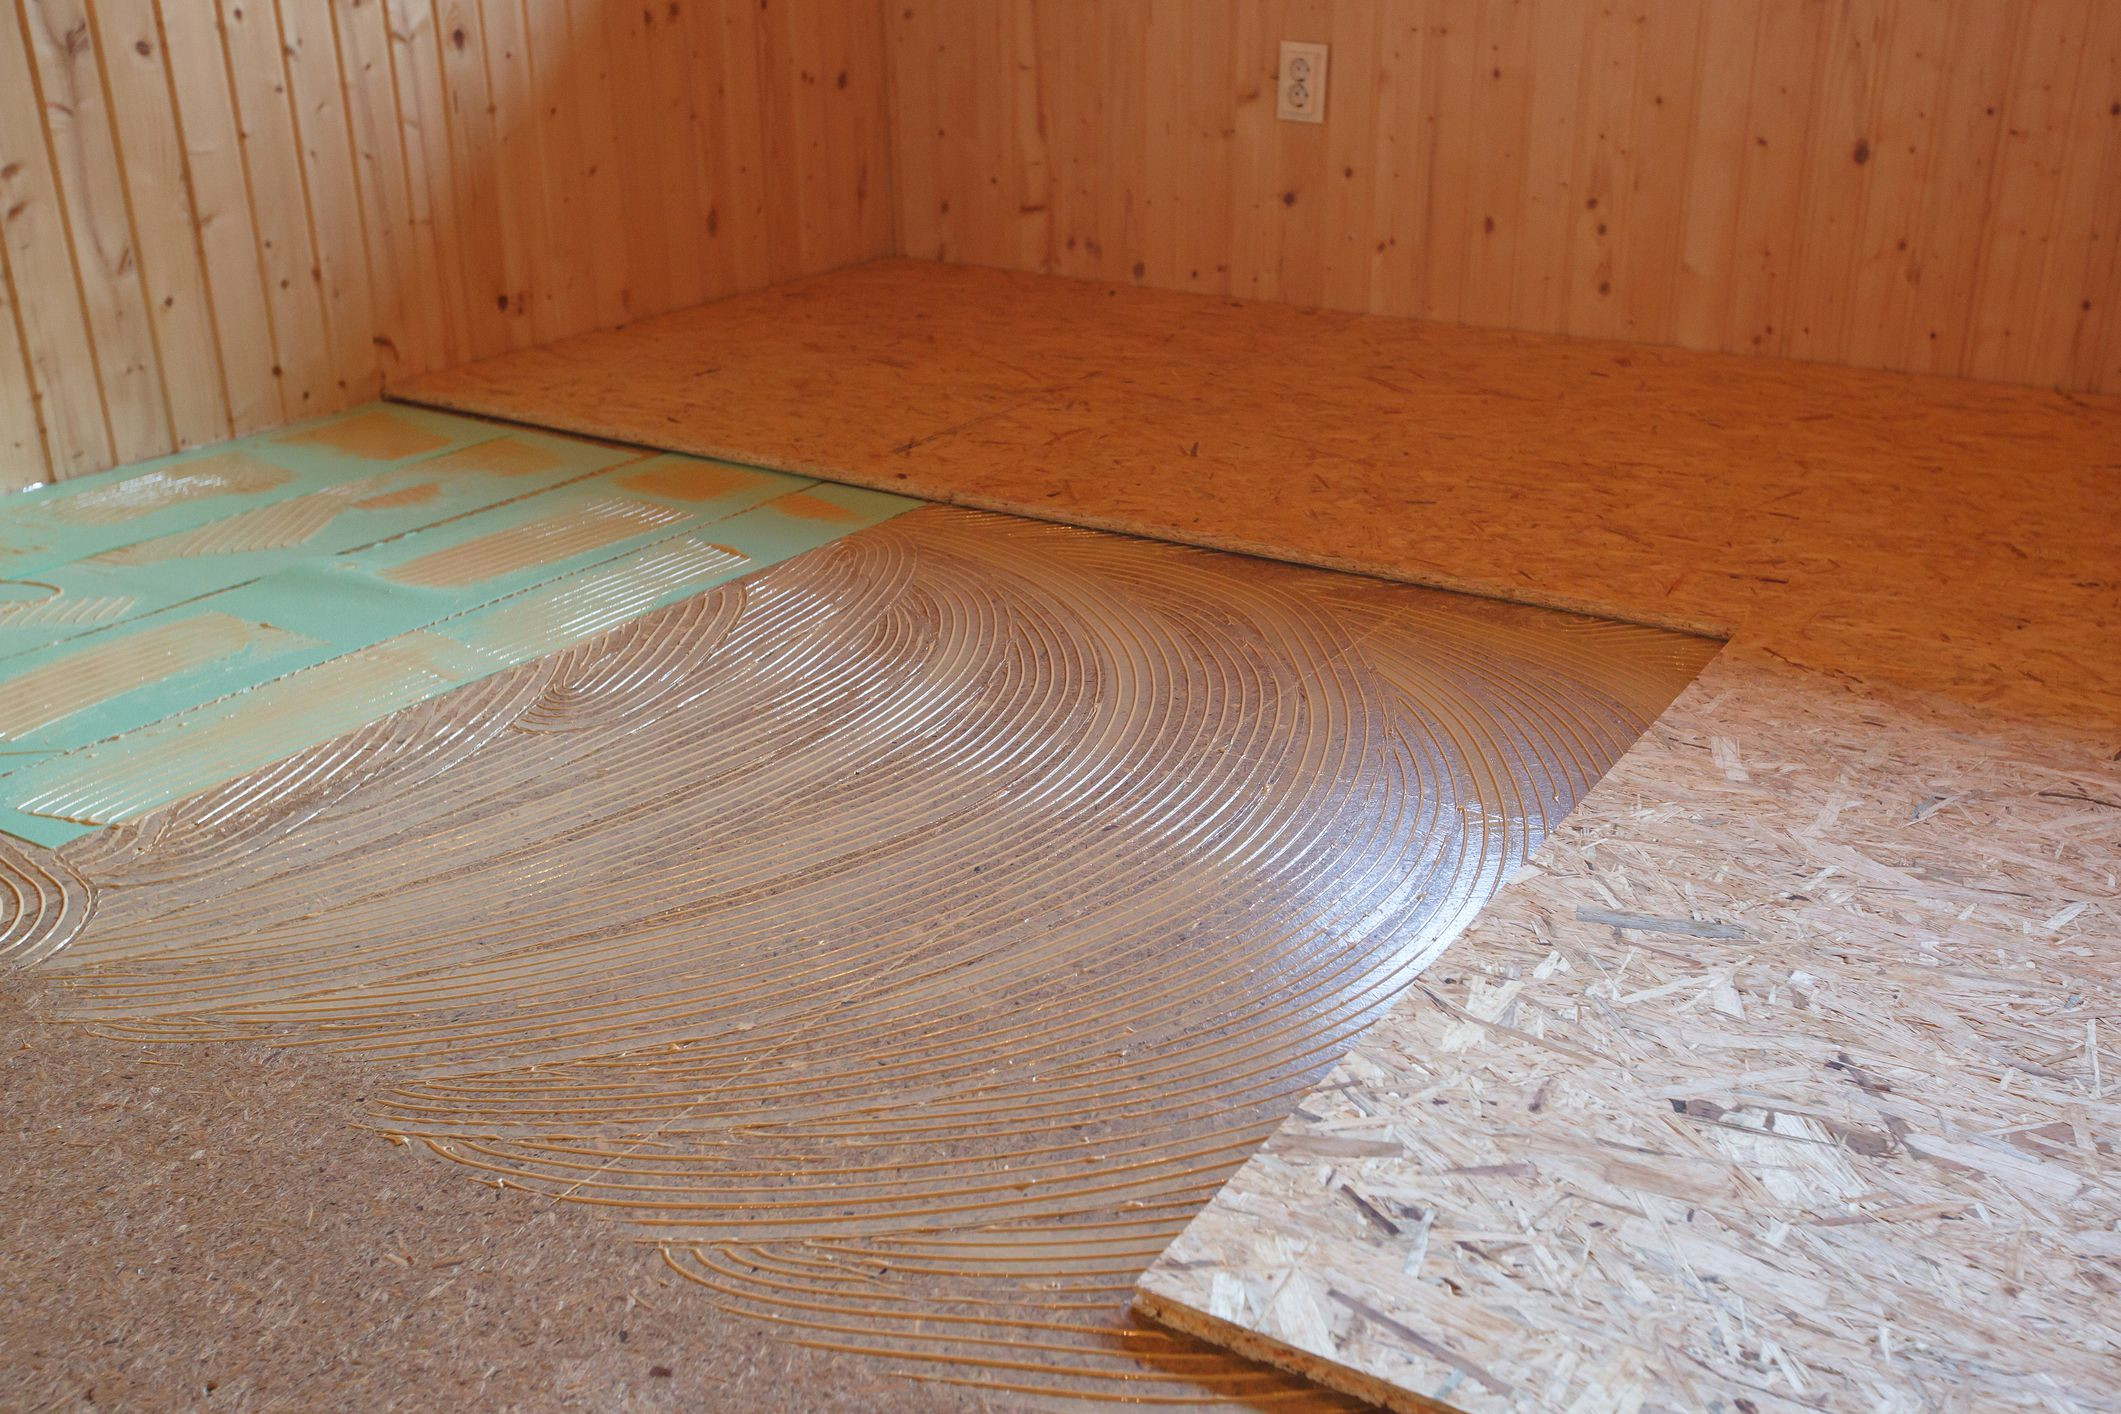 how to dry hardwood floor water damage of types of subfloor materials in construction projects inside gettyimages 892047030 5af5f46fc064710036eebd22